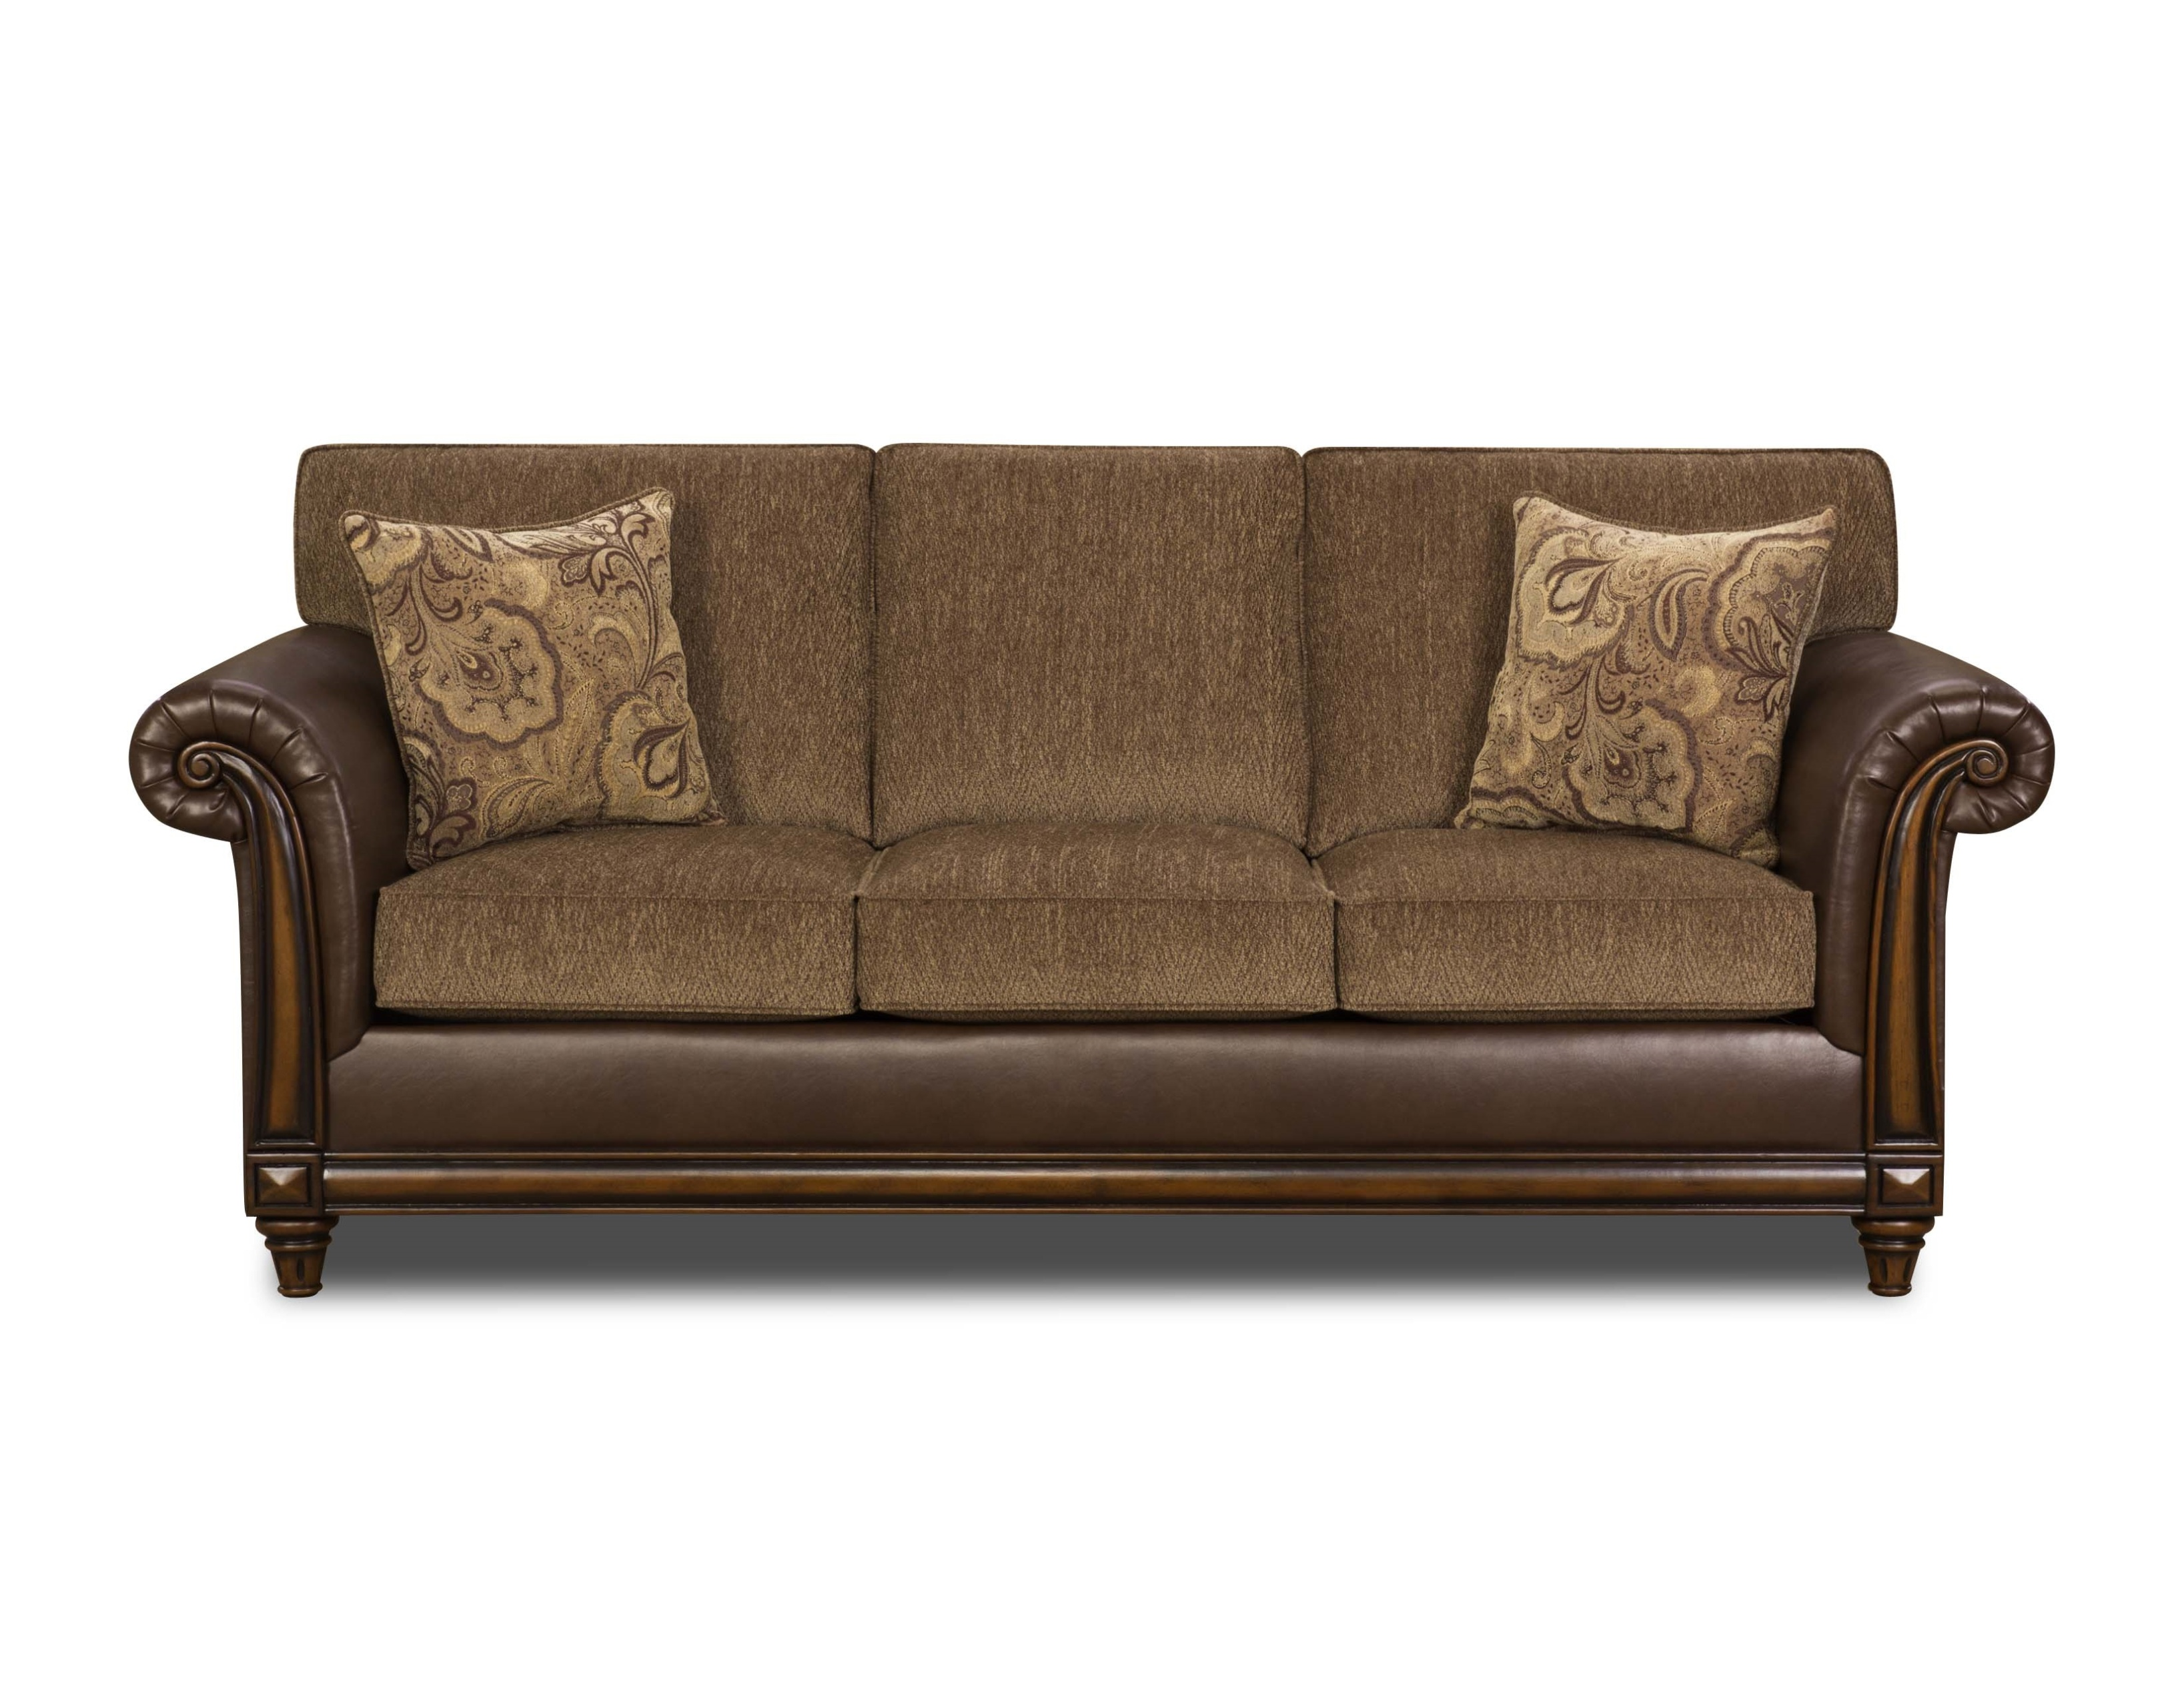 Simmons 8013 Sofa And Loveseat Set